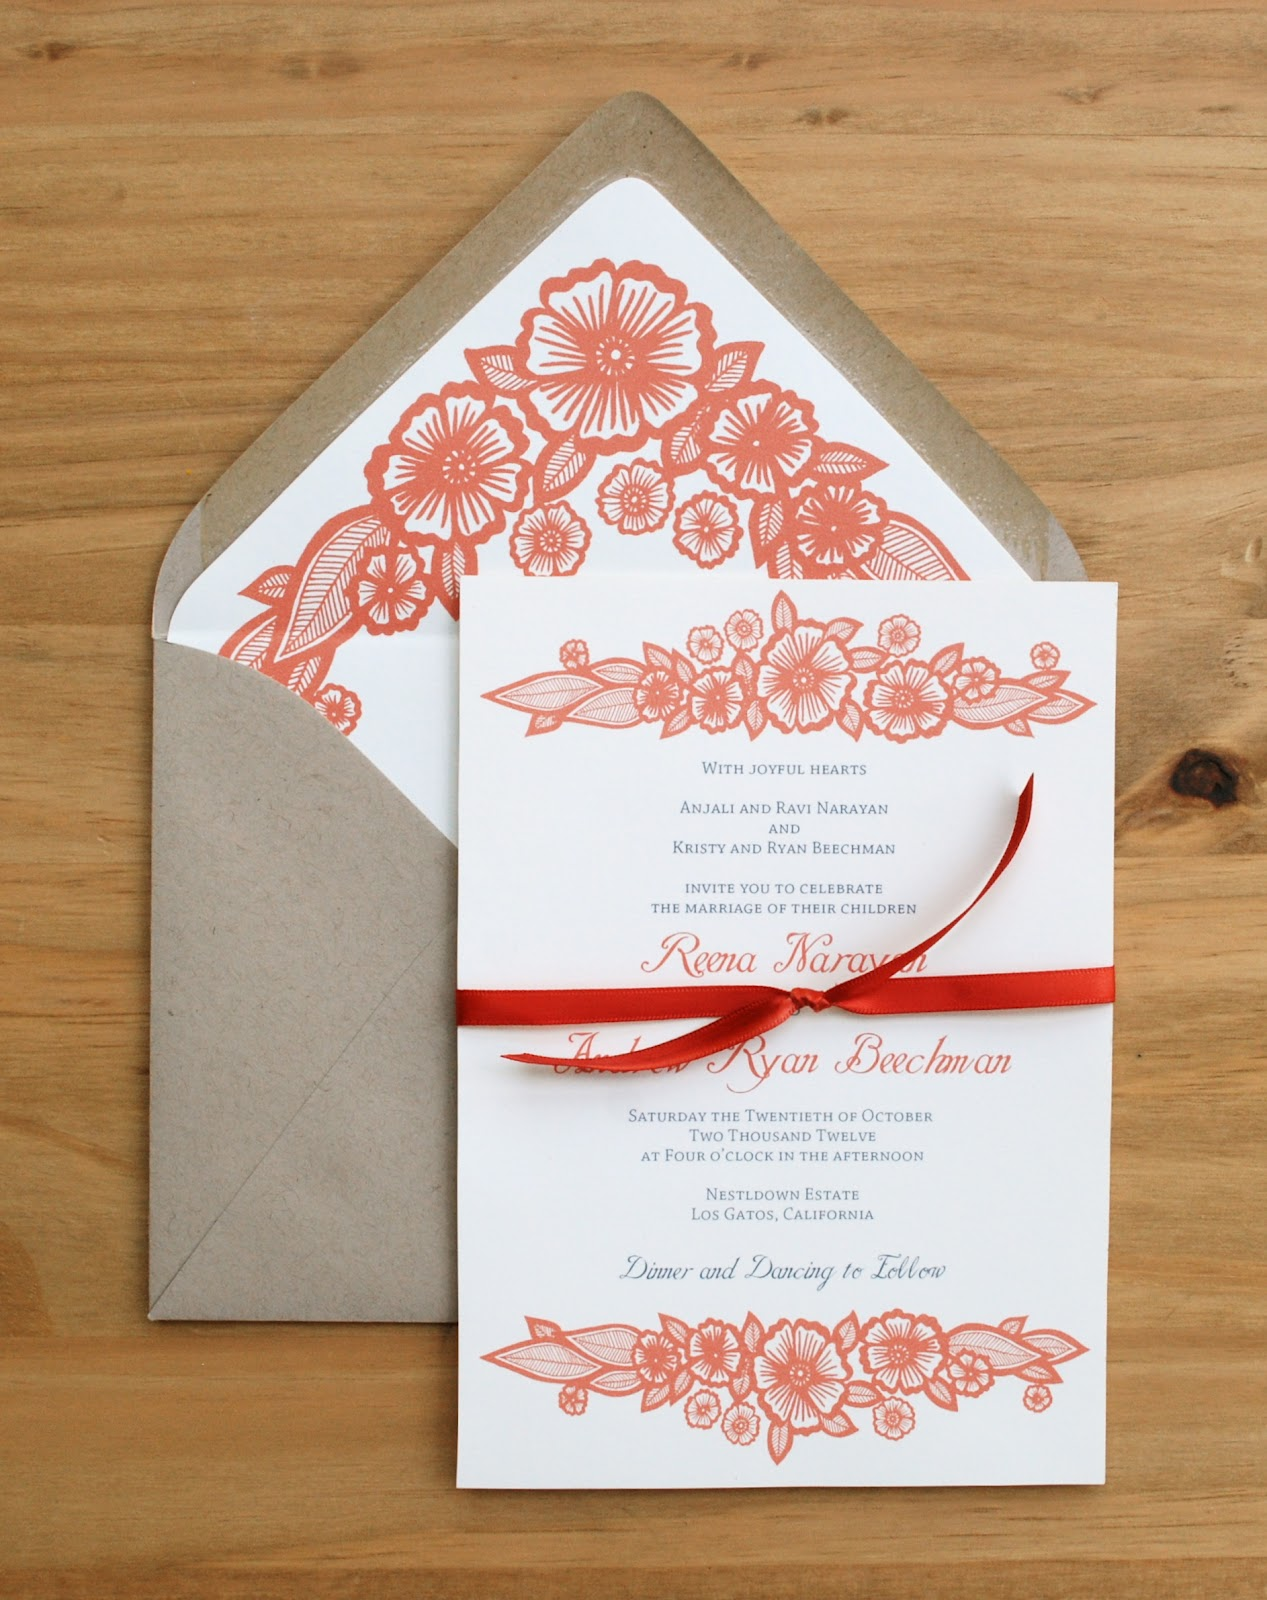 The Whole Thing Was Then Tied Together With A Bright Red Ribbon To Add One More Pop Of Color Invitation Suite Perfect For Fall Wedding